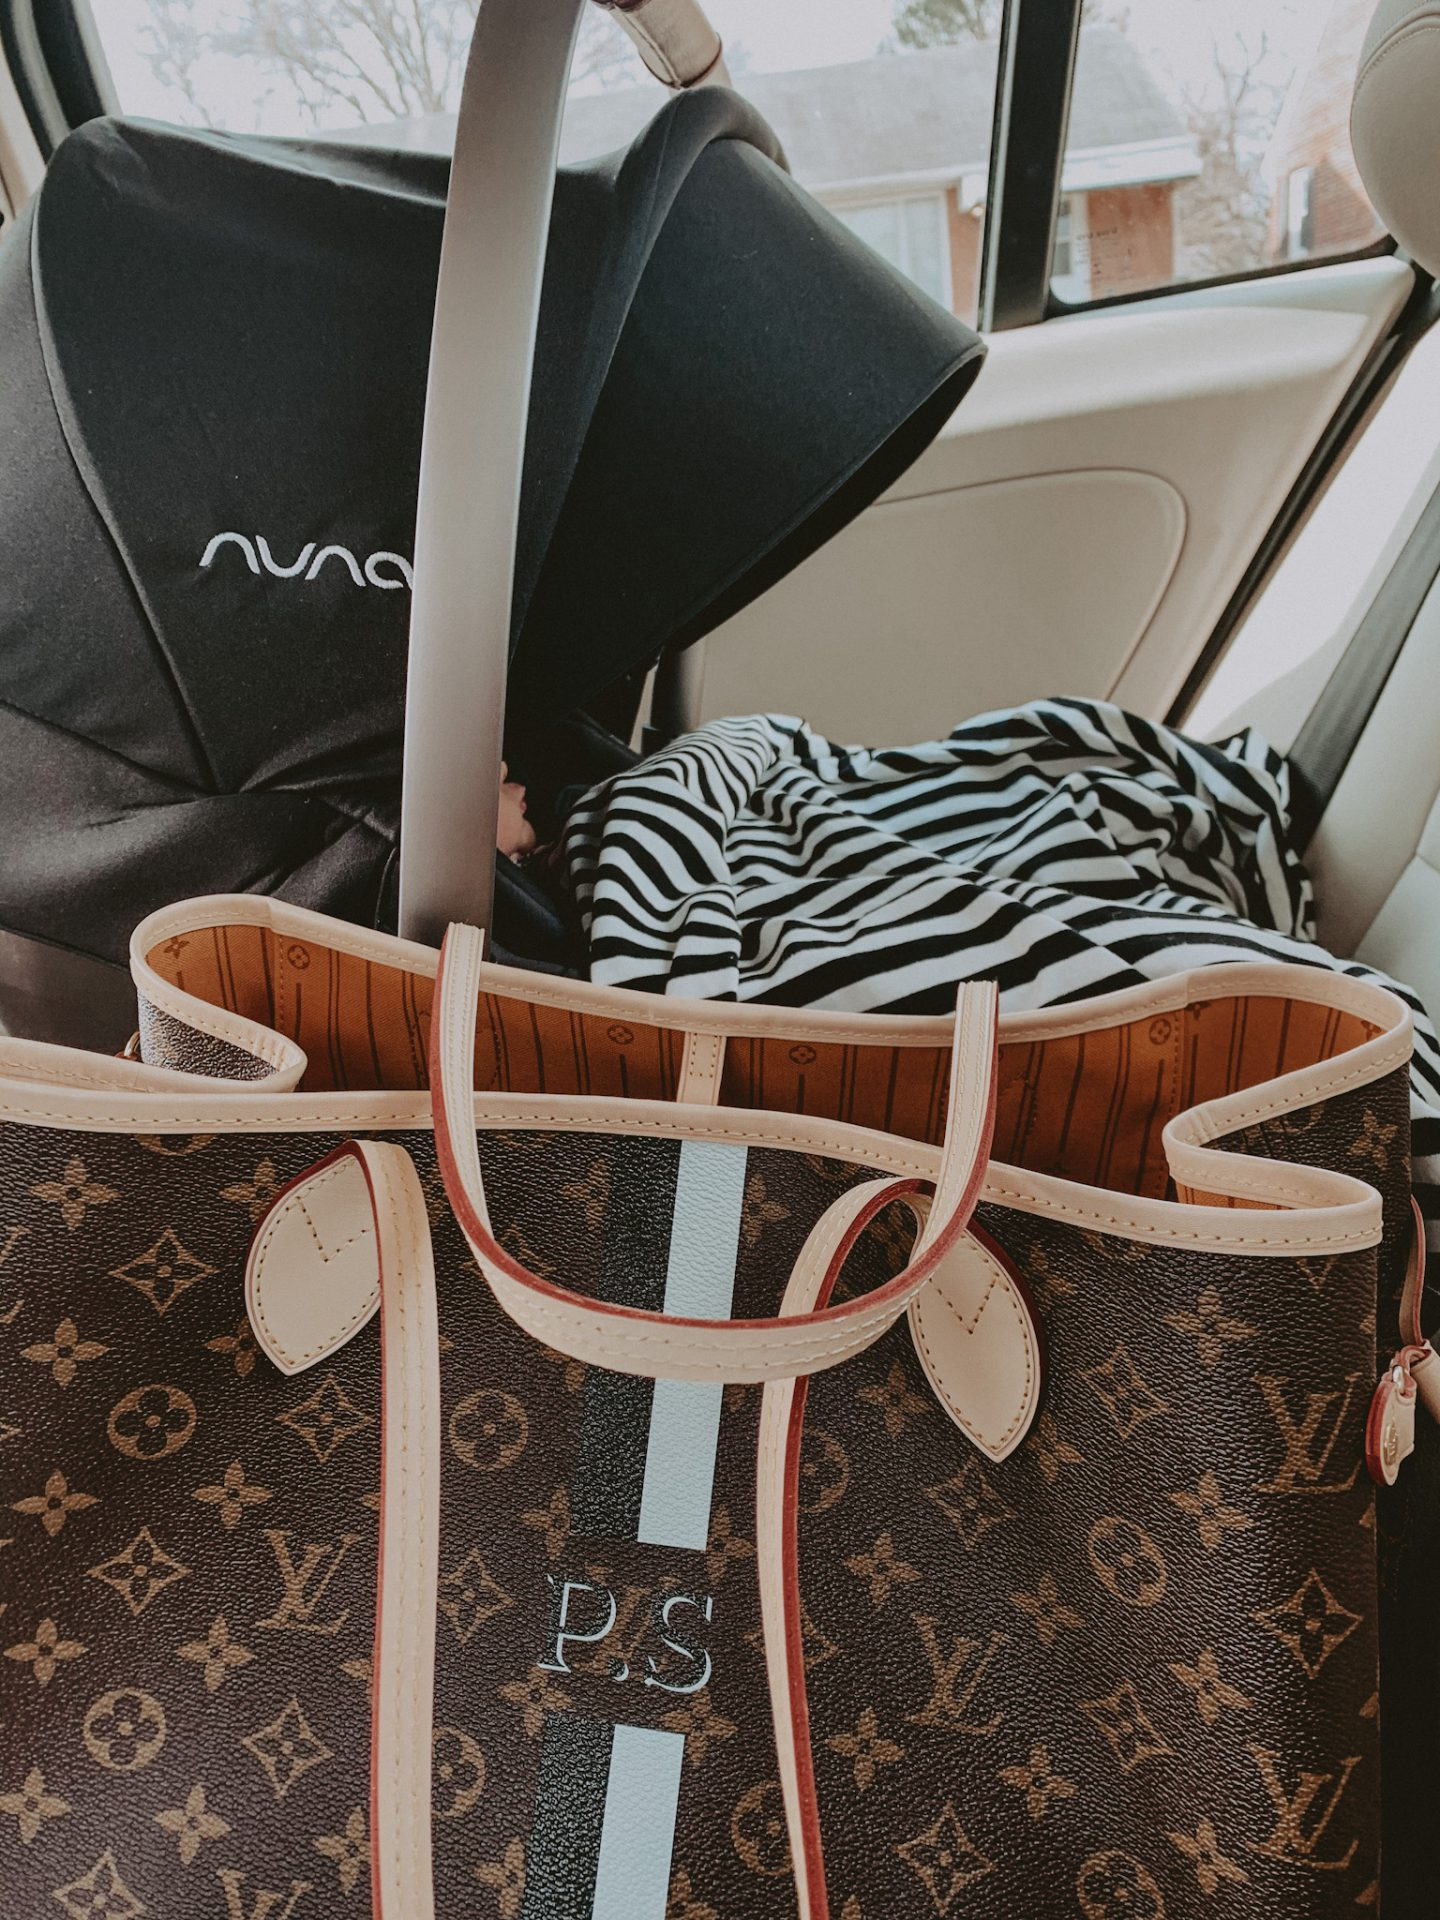 nuna pipa carseat review cathclaire